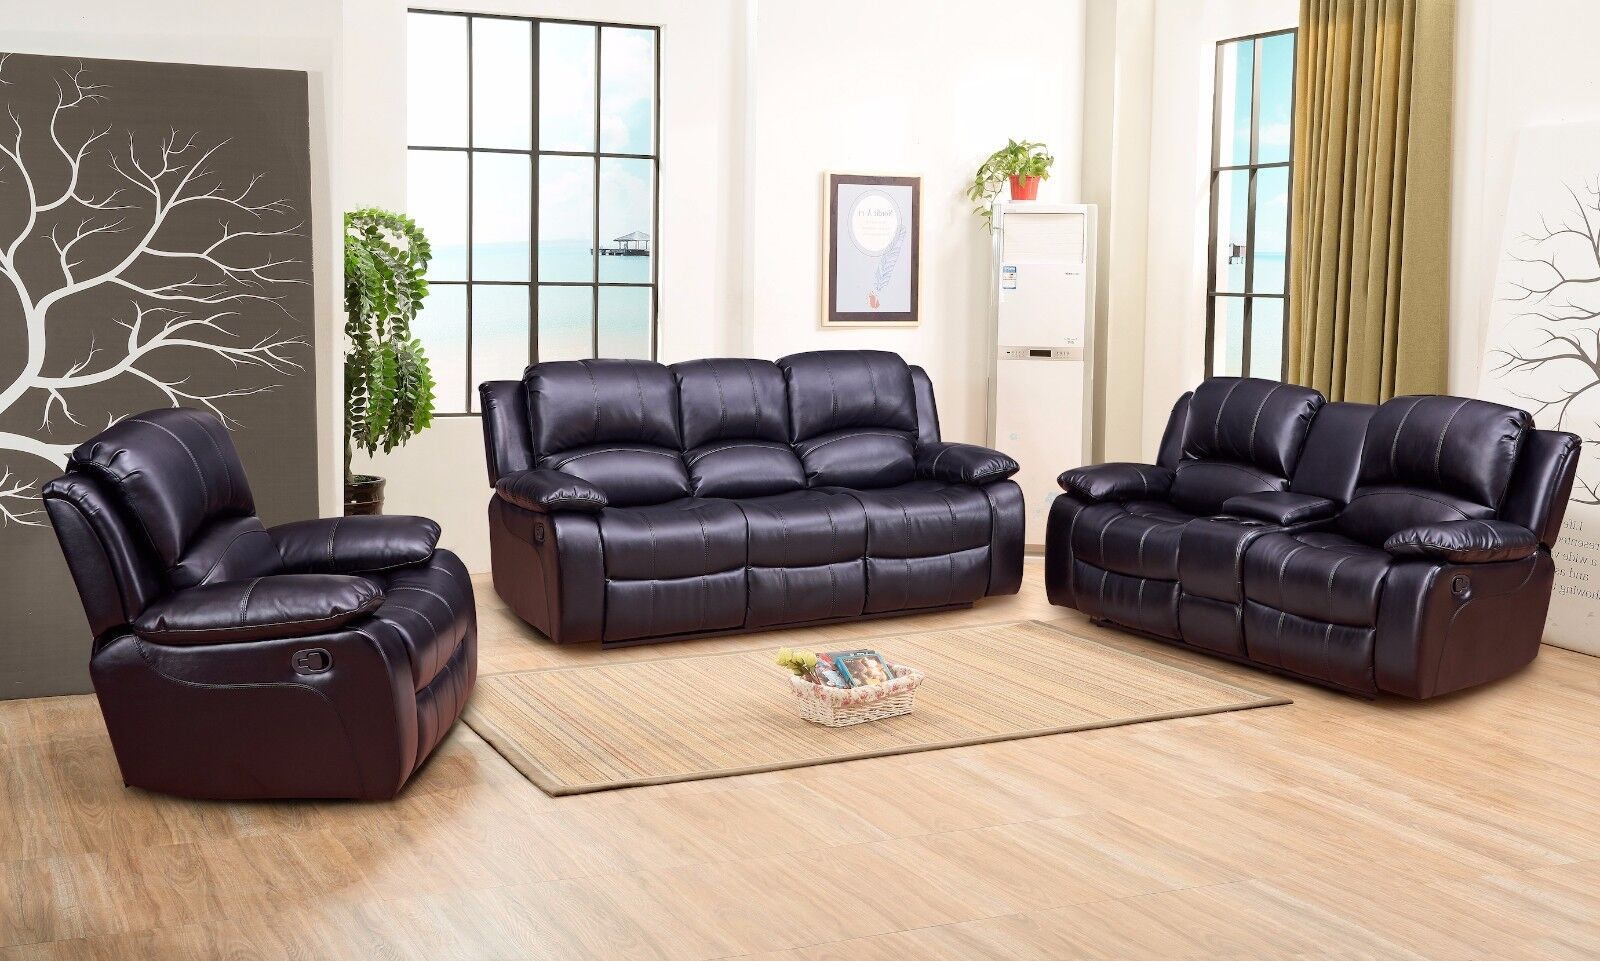 3 pc bonded leather recliner sofa set